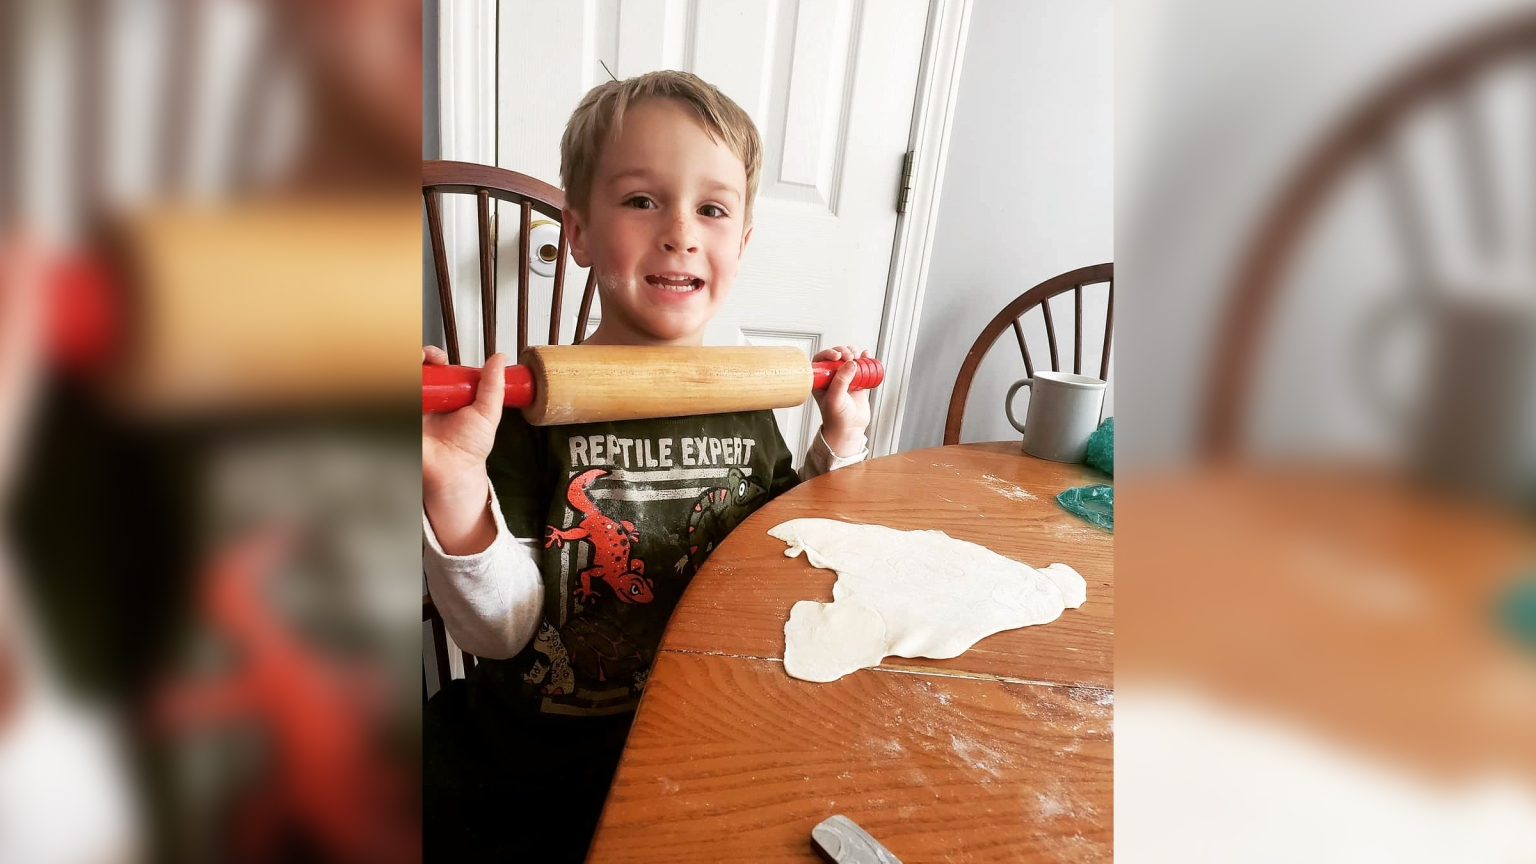 8-year-old boy mowing lawns for first responders and single moms and feeding the hungry